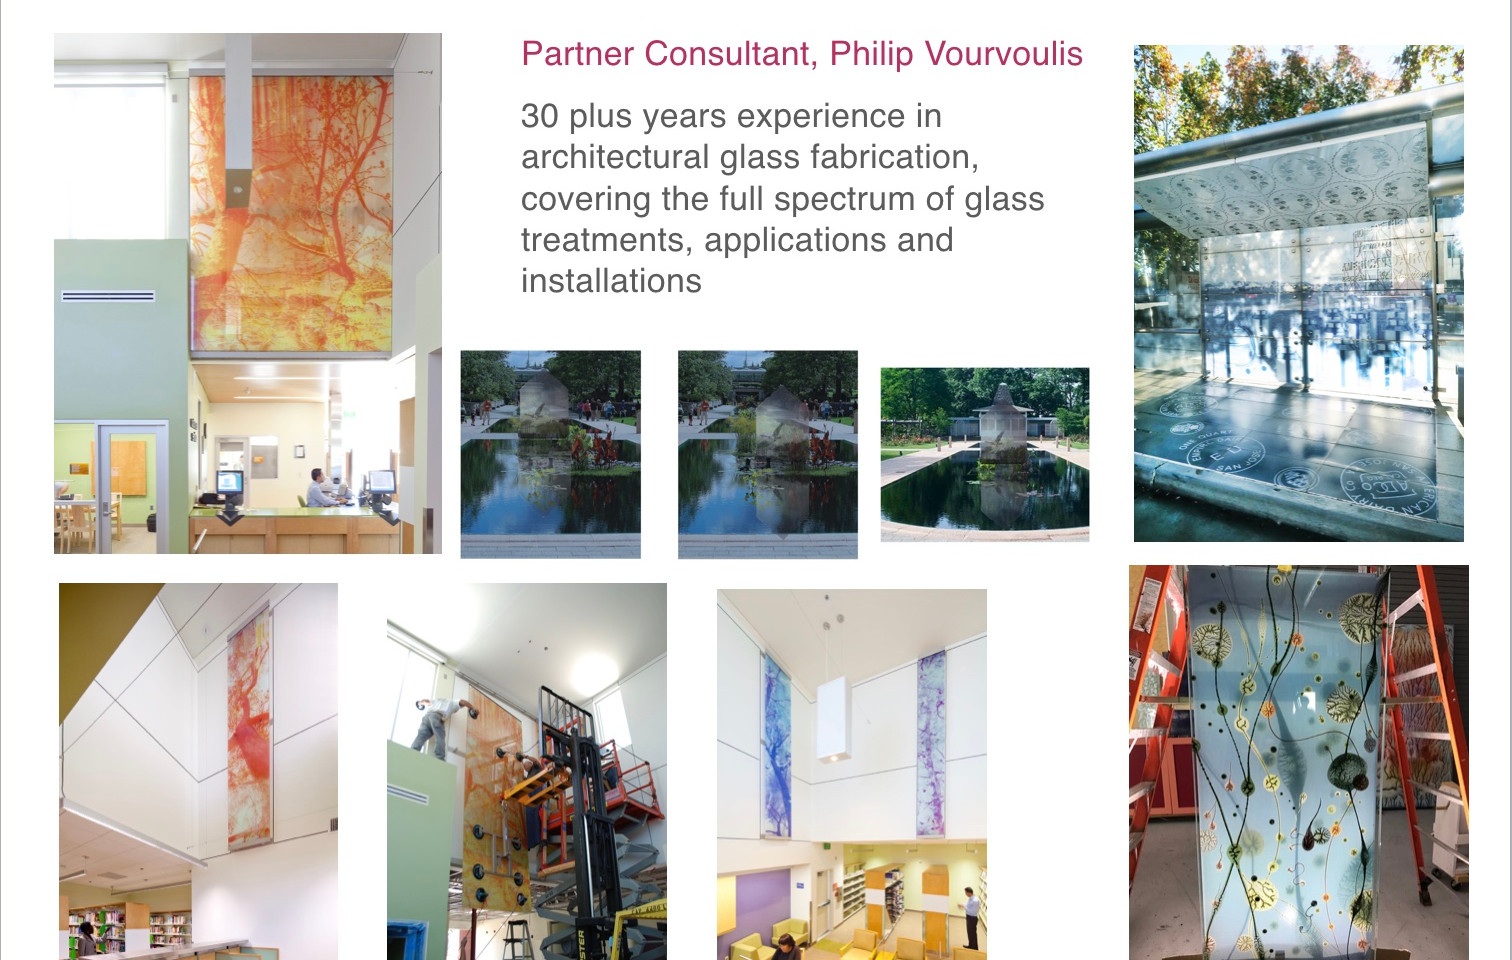 Partner Consultant, Philip Vourvoulis  30 plus years experience in architectural glass fabrication, covering the full spectrum of glass treatments, applications and installations